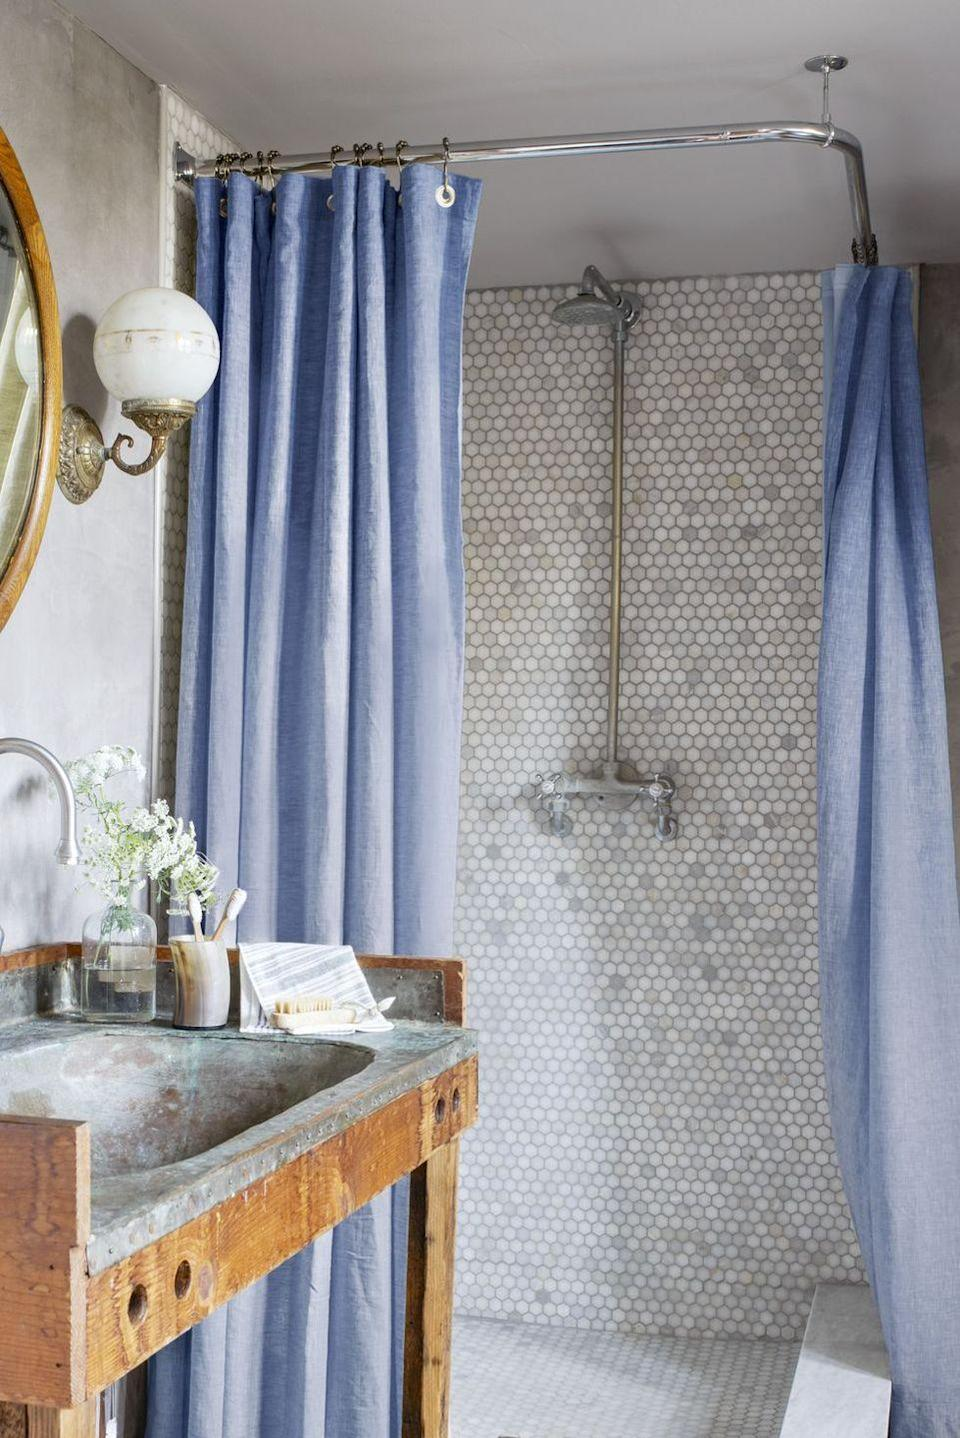 <p>Penny tiles create a focal point against the cornflower blue shower curtains in this charming bathroom filled with subdued shades of gray.<br></p>